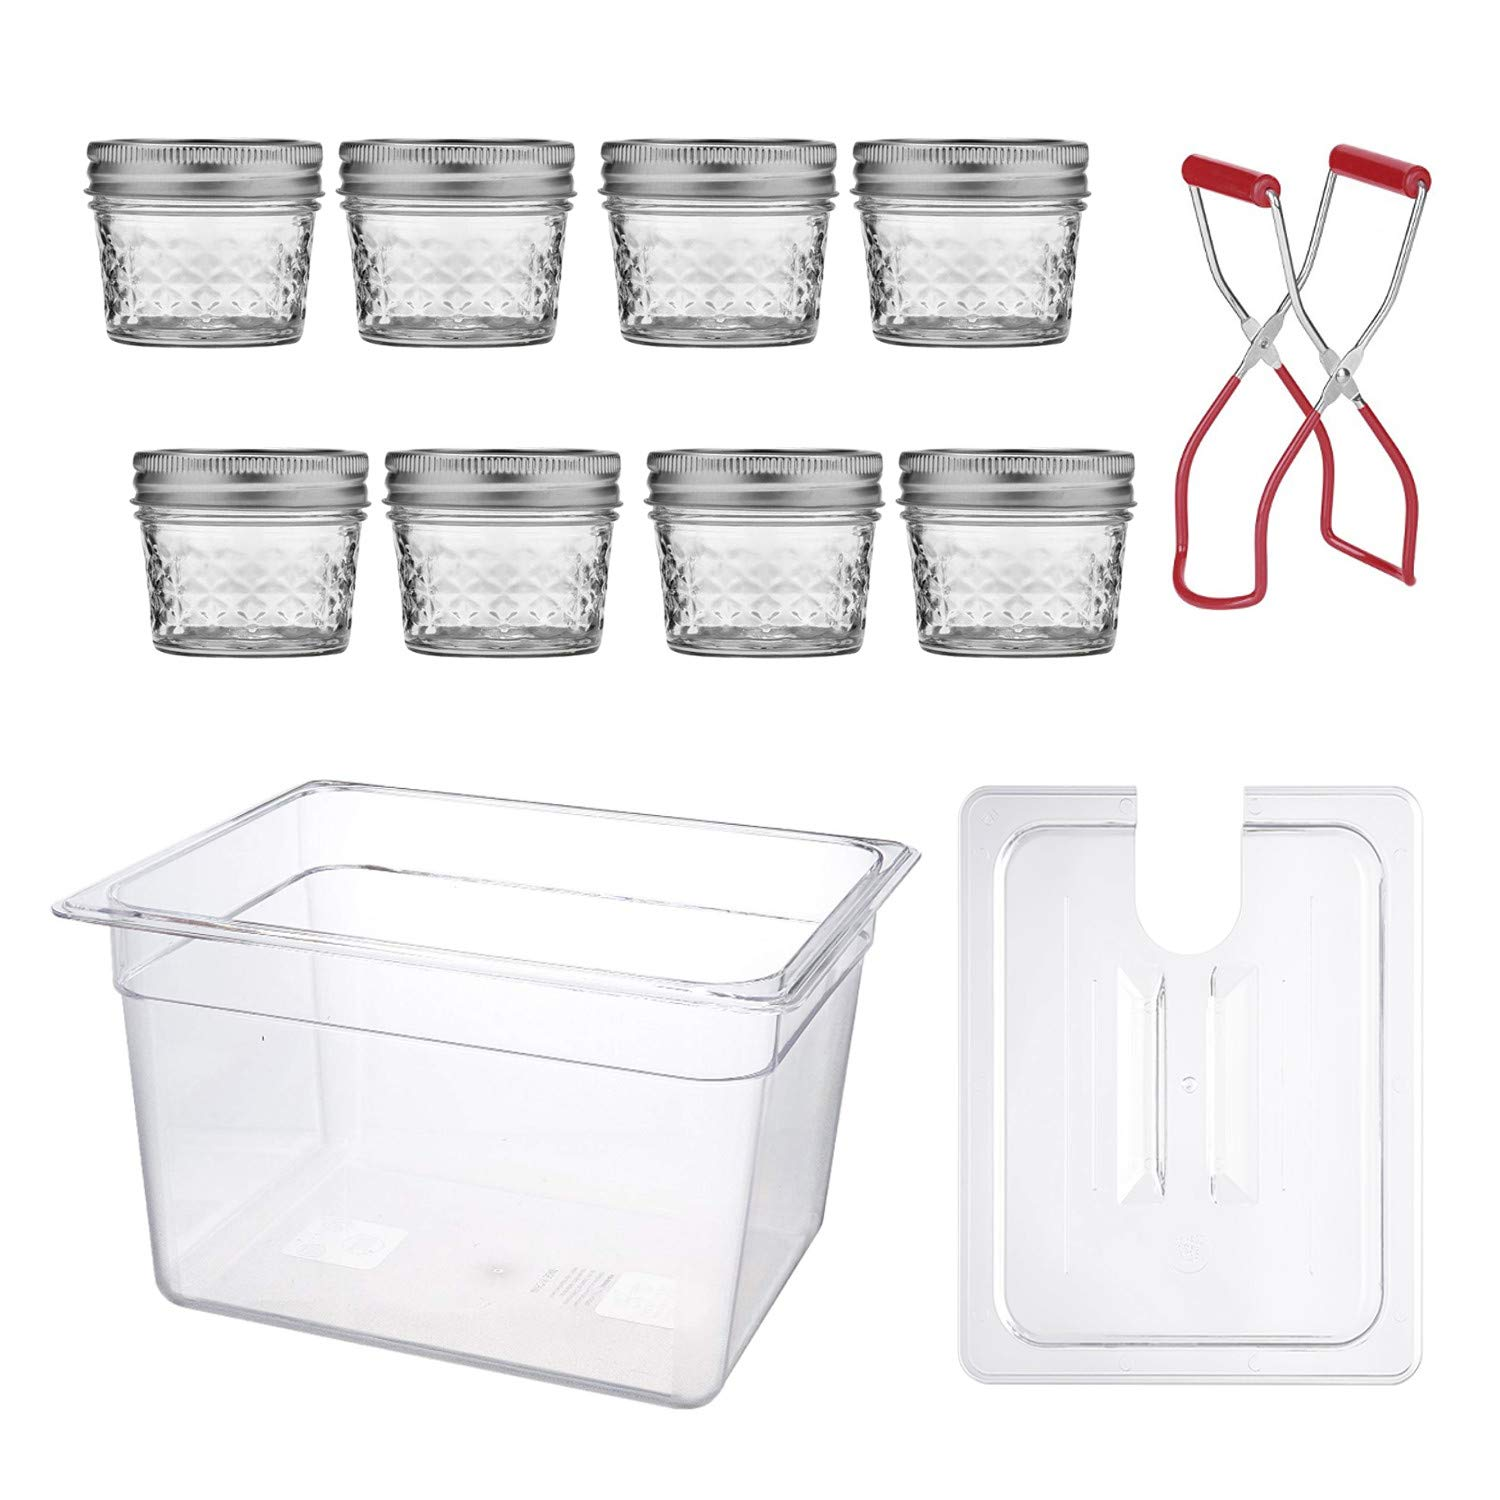 Sous Vide Egg Bites Mold Kit - 8 Sous Vide Jars (4 Oz, Glass), Sous Vide Container with Lid (12 Quart) and Jar Lifter for Sous Vide Mason jars | Lid Opening for Anova or Joule Precision Cookers